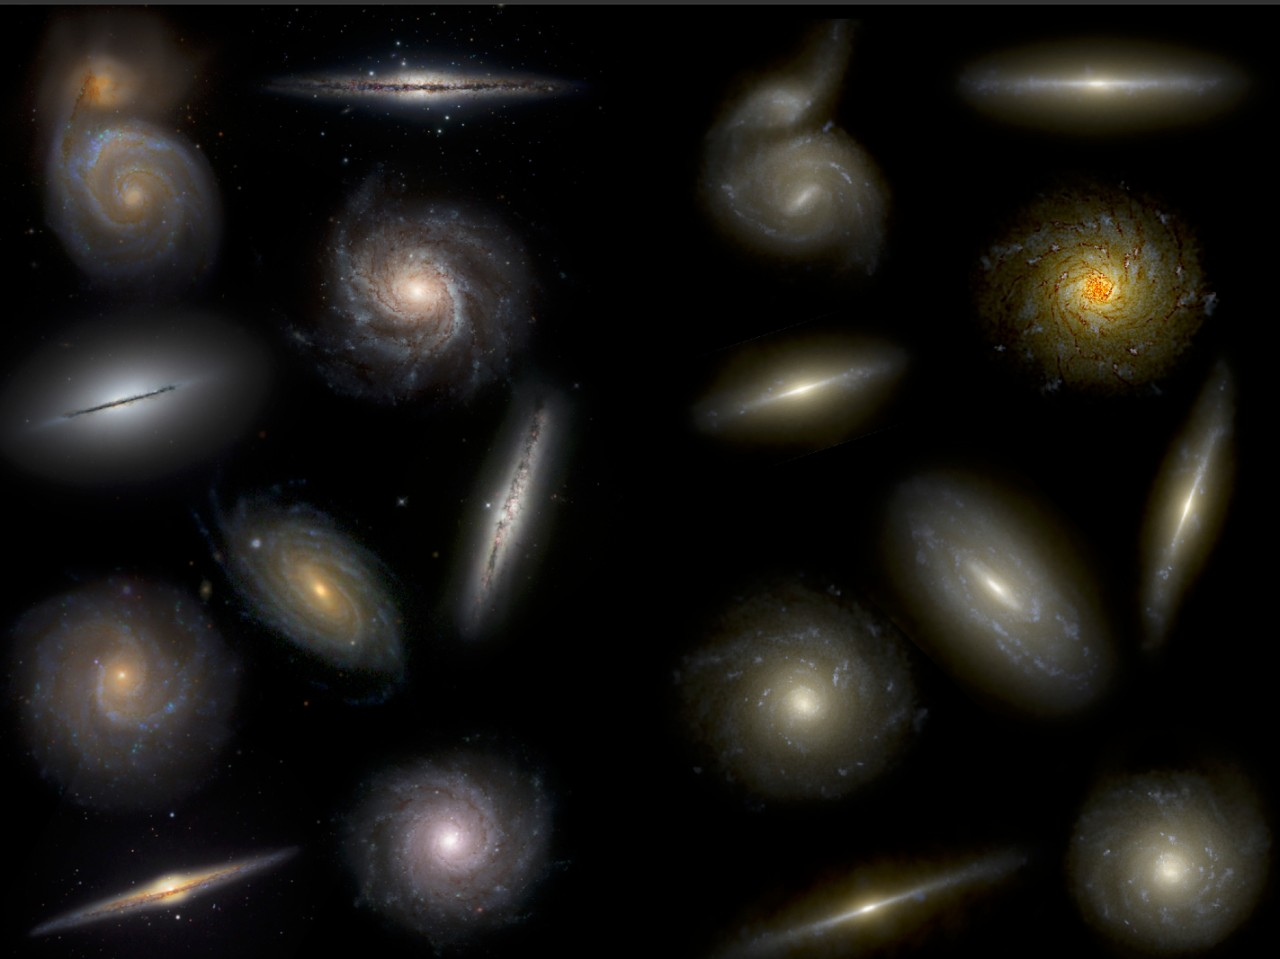 Visual comparison of real (left) and simulated (right) galaxies of different morphologies. Credit: T. Buck (PhD thesis), based on NIHAO simulations (PI: Andrea V. Macciò).